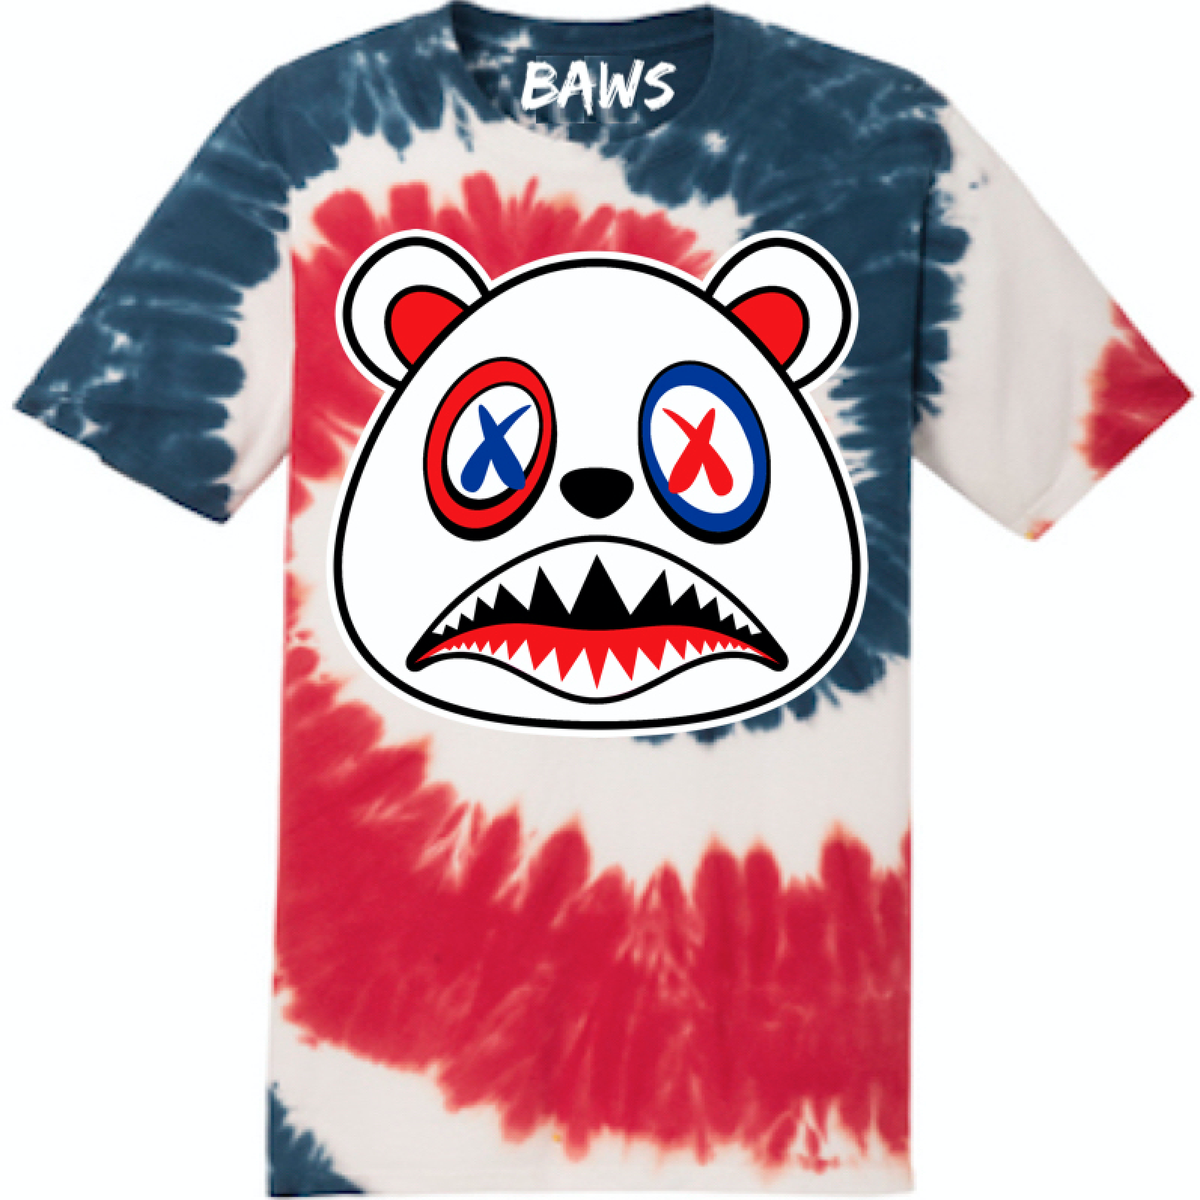 USA Baws Flag Tye Dye Shirt 4th of July shirt is available on our online  store. 2e15b554cf